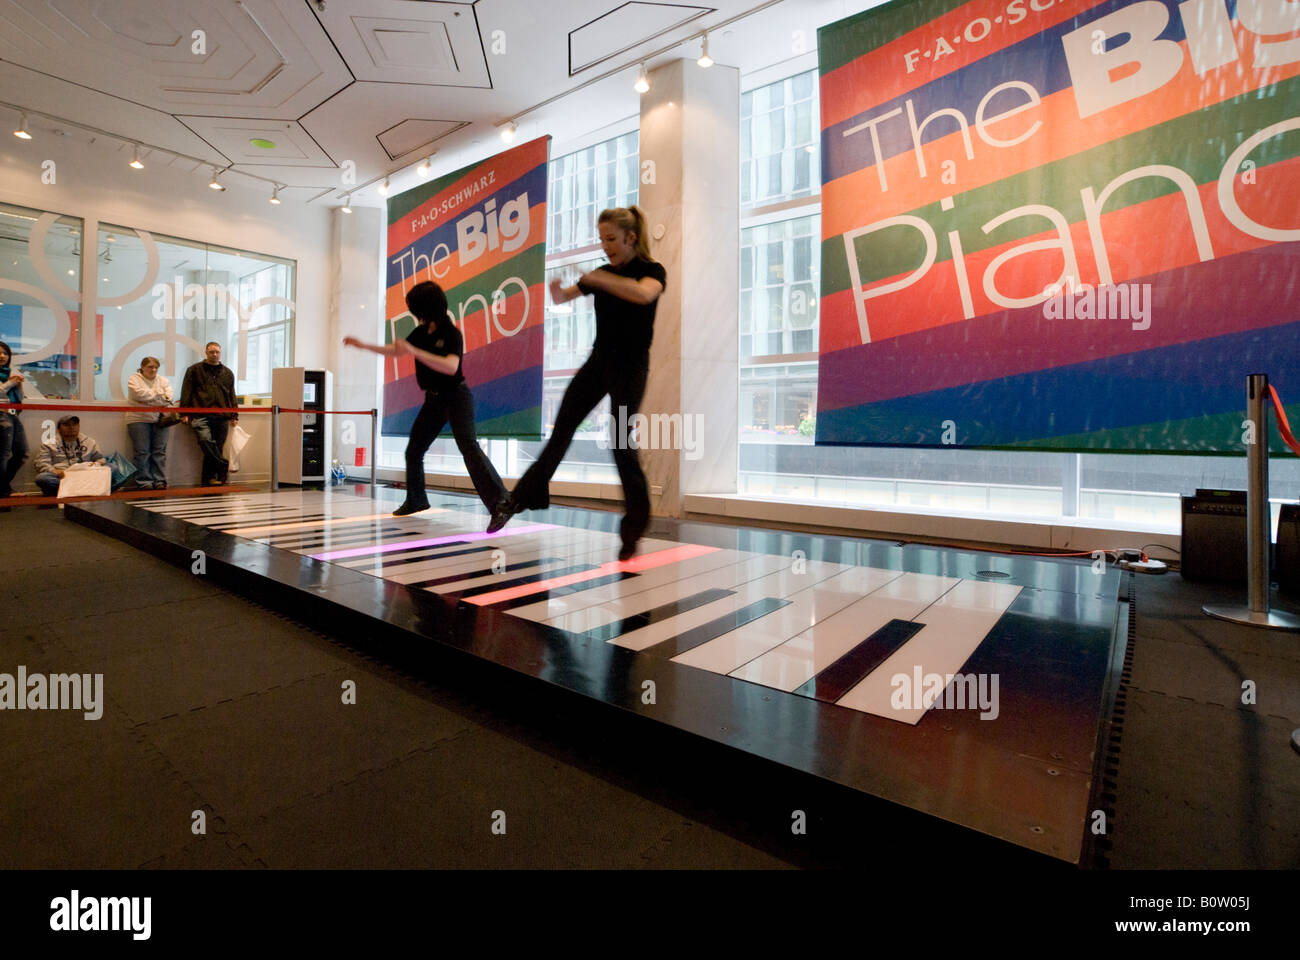 Fao schwarz new york fifth avenue toy store the big piano being fao schwarz new york fifth avenue toy store the big piano being played by staff who dance on the keys to perform tunes sciox Image collections